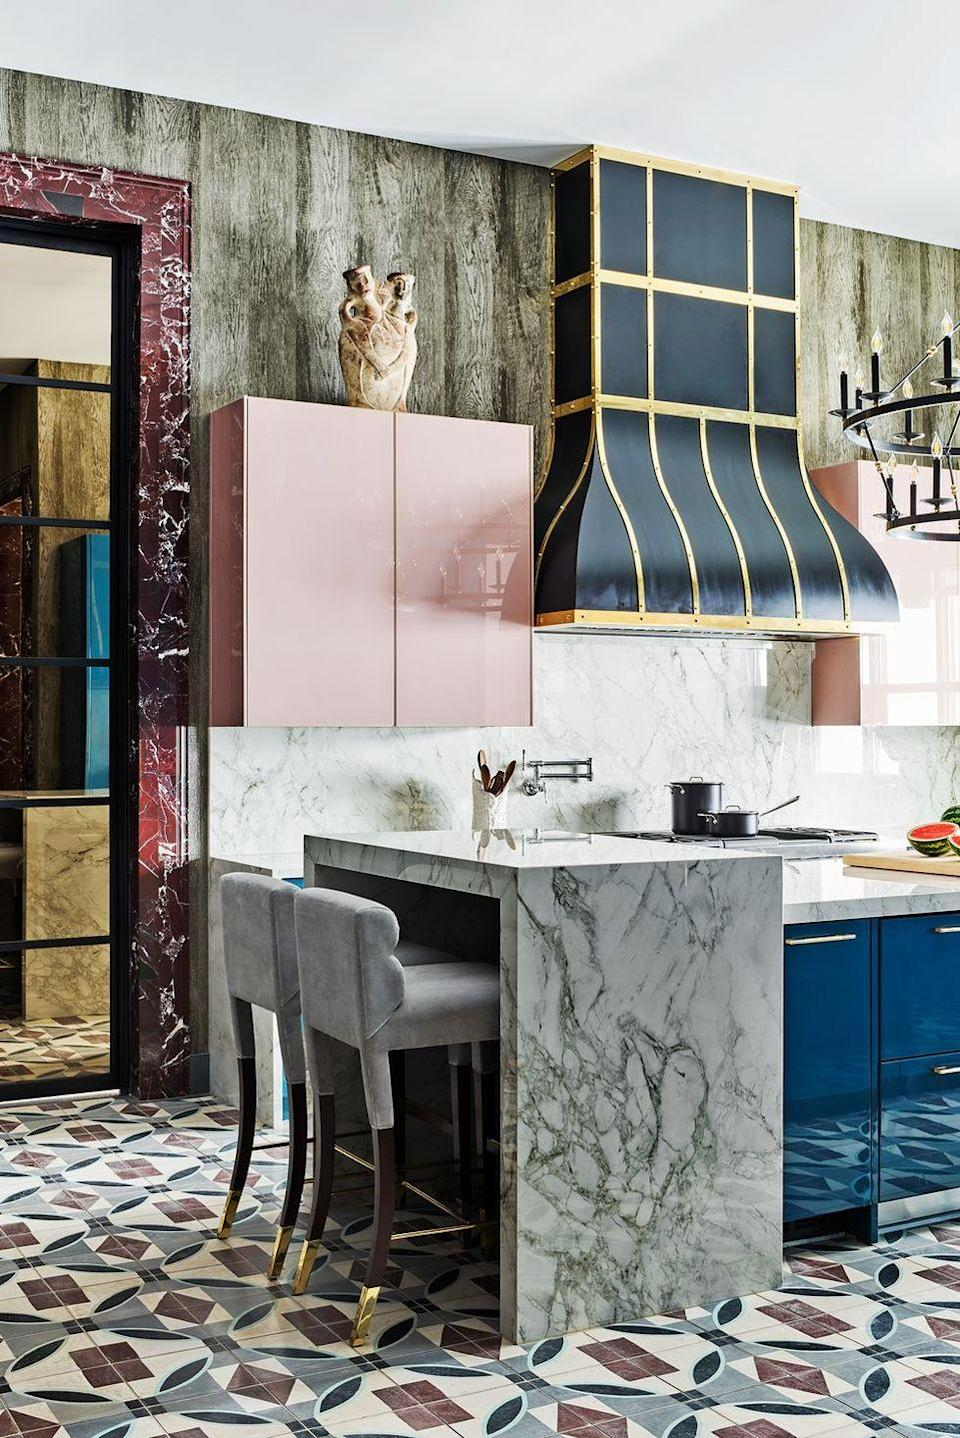 "<p>Lacquer, marble, tiles, oh my! This fabulously over-the-top kitchen designed by <a href=""http://www.michellenussbaumer.com/"" rel=""nofollow noopener"" target=""_blank"" data-ylk=""slk:Michelle Nussbaumer"" class=""link rapid-noclick-resp"">Michelle Nussbaumer</a> isn't afraid to have fun. For a similar look, choose a backsplash that corresponds with the kitchen island and then use tile on the floors.</p>"